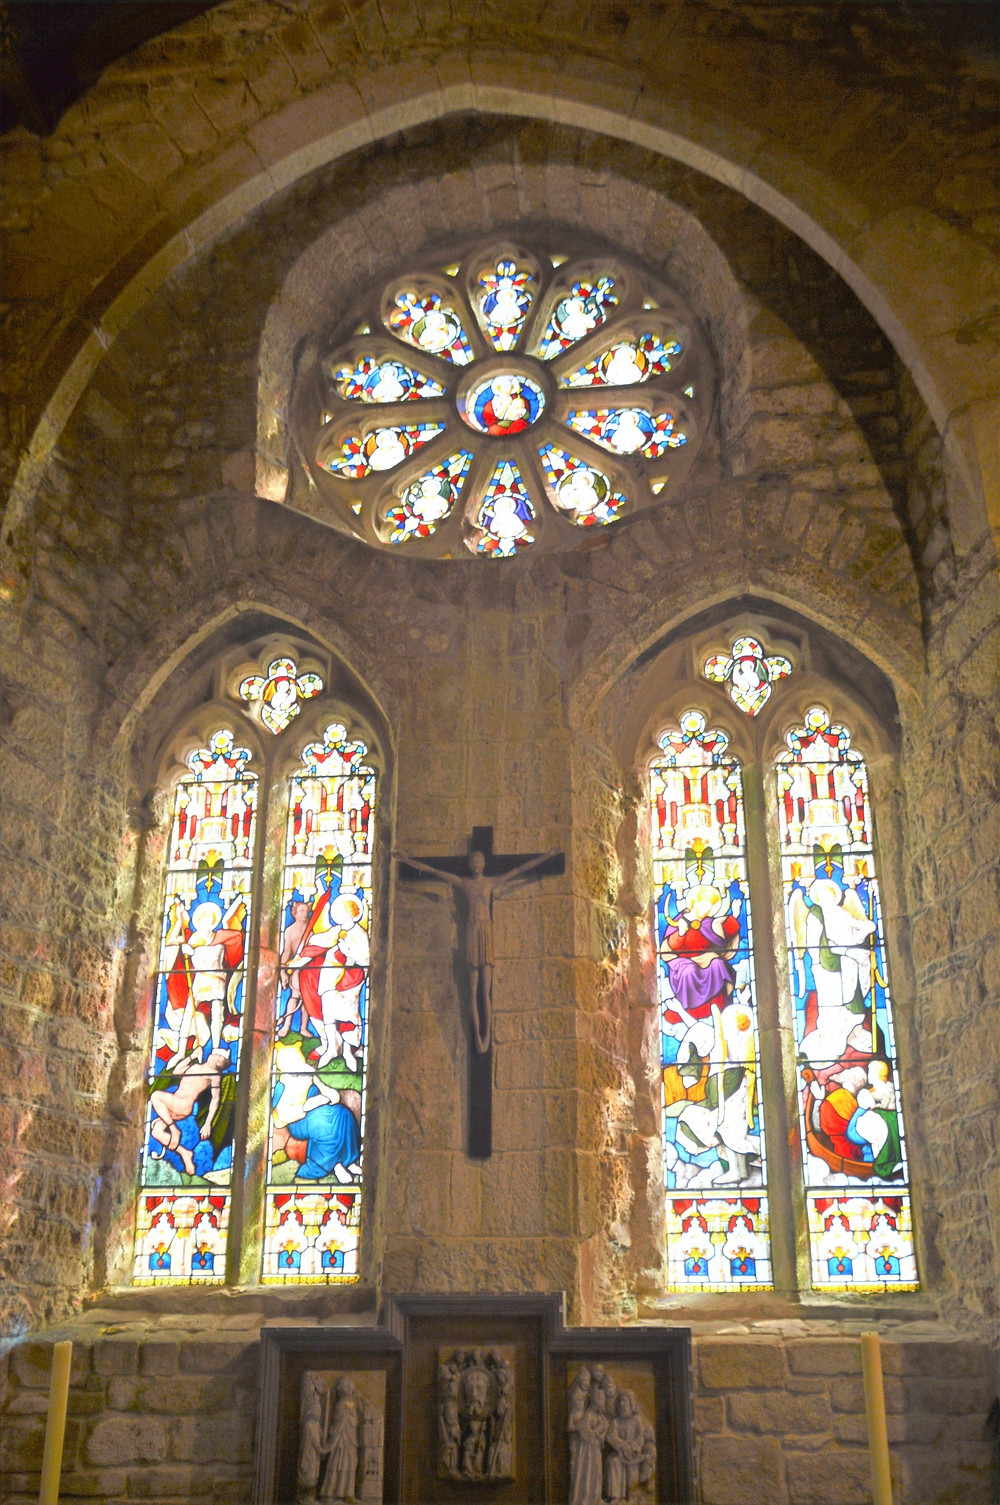 On the main alter of St Michael church in St Michael's Mount castle, are 15th century alabasters panels depicting the Mass of St Gregory, John the Baptist, and Pontius Pilate